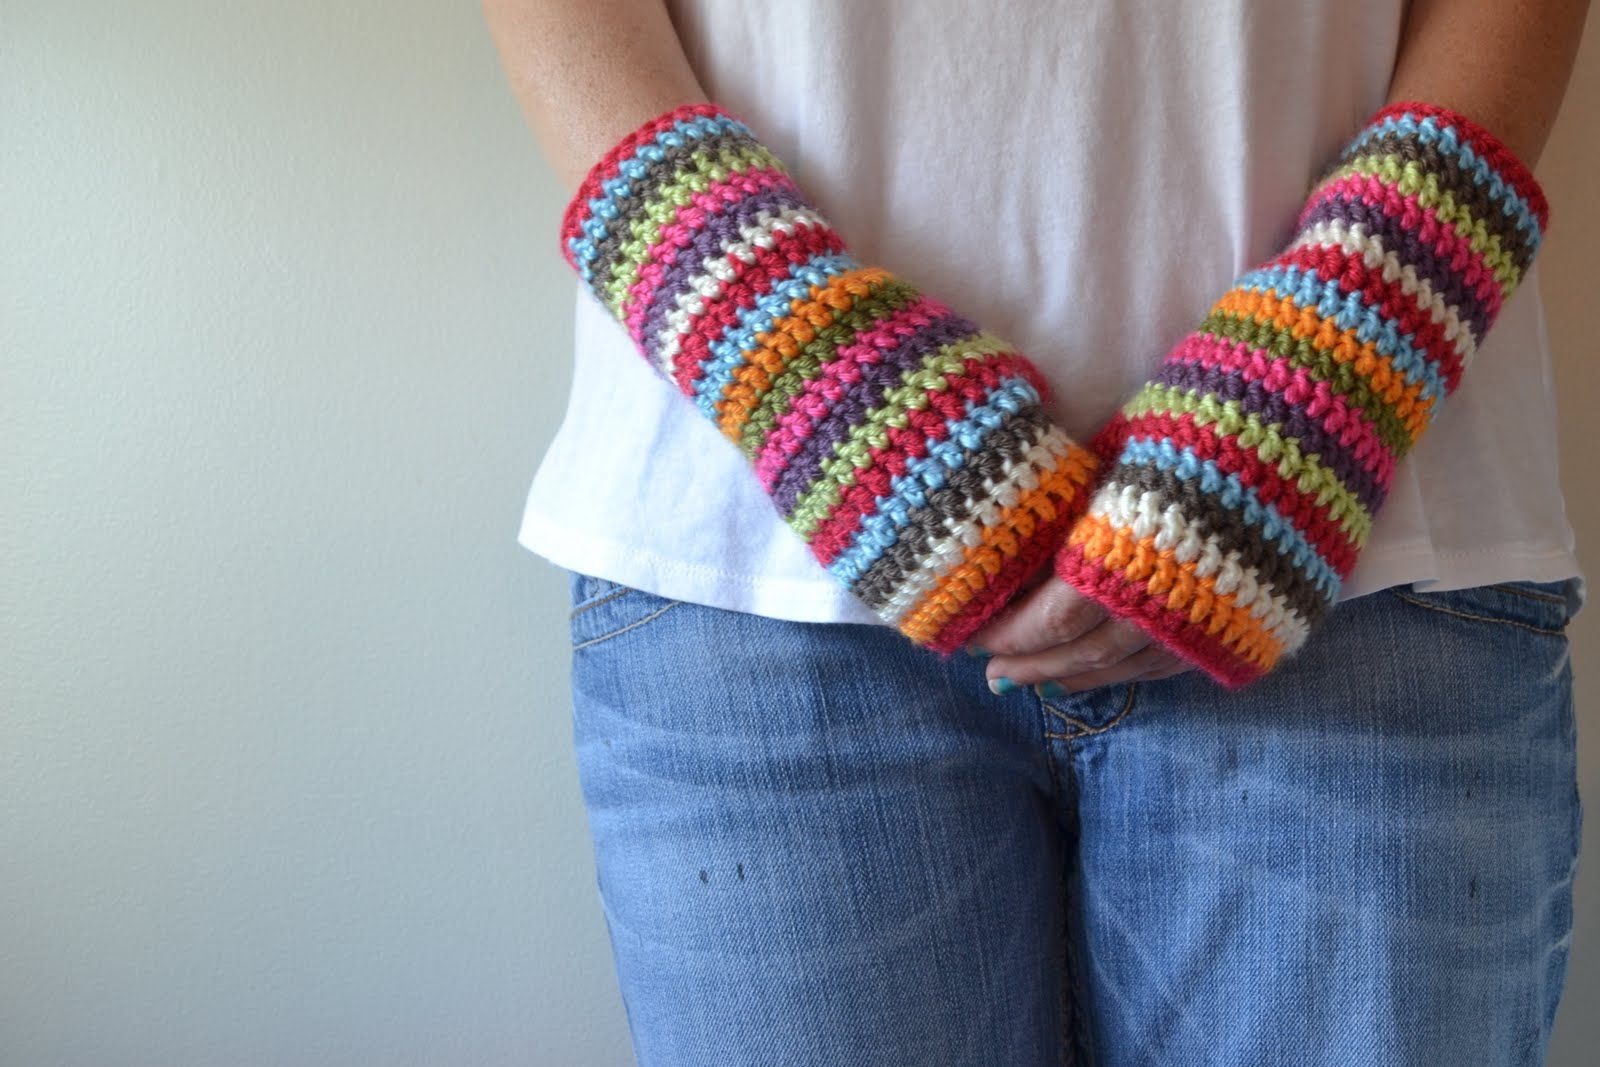 Crochet Patterns Gloves : Crochet in Color: Colorful Stripey Fingerless Mitts